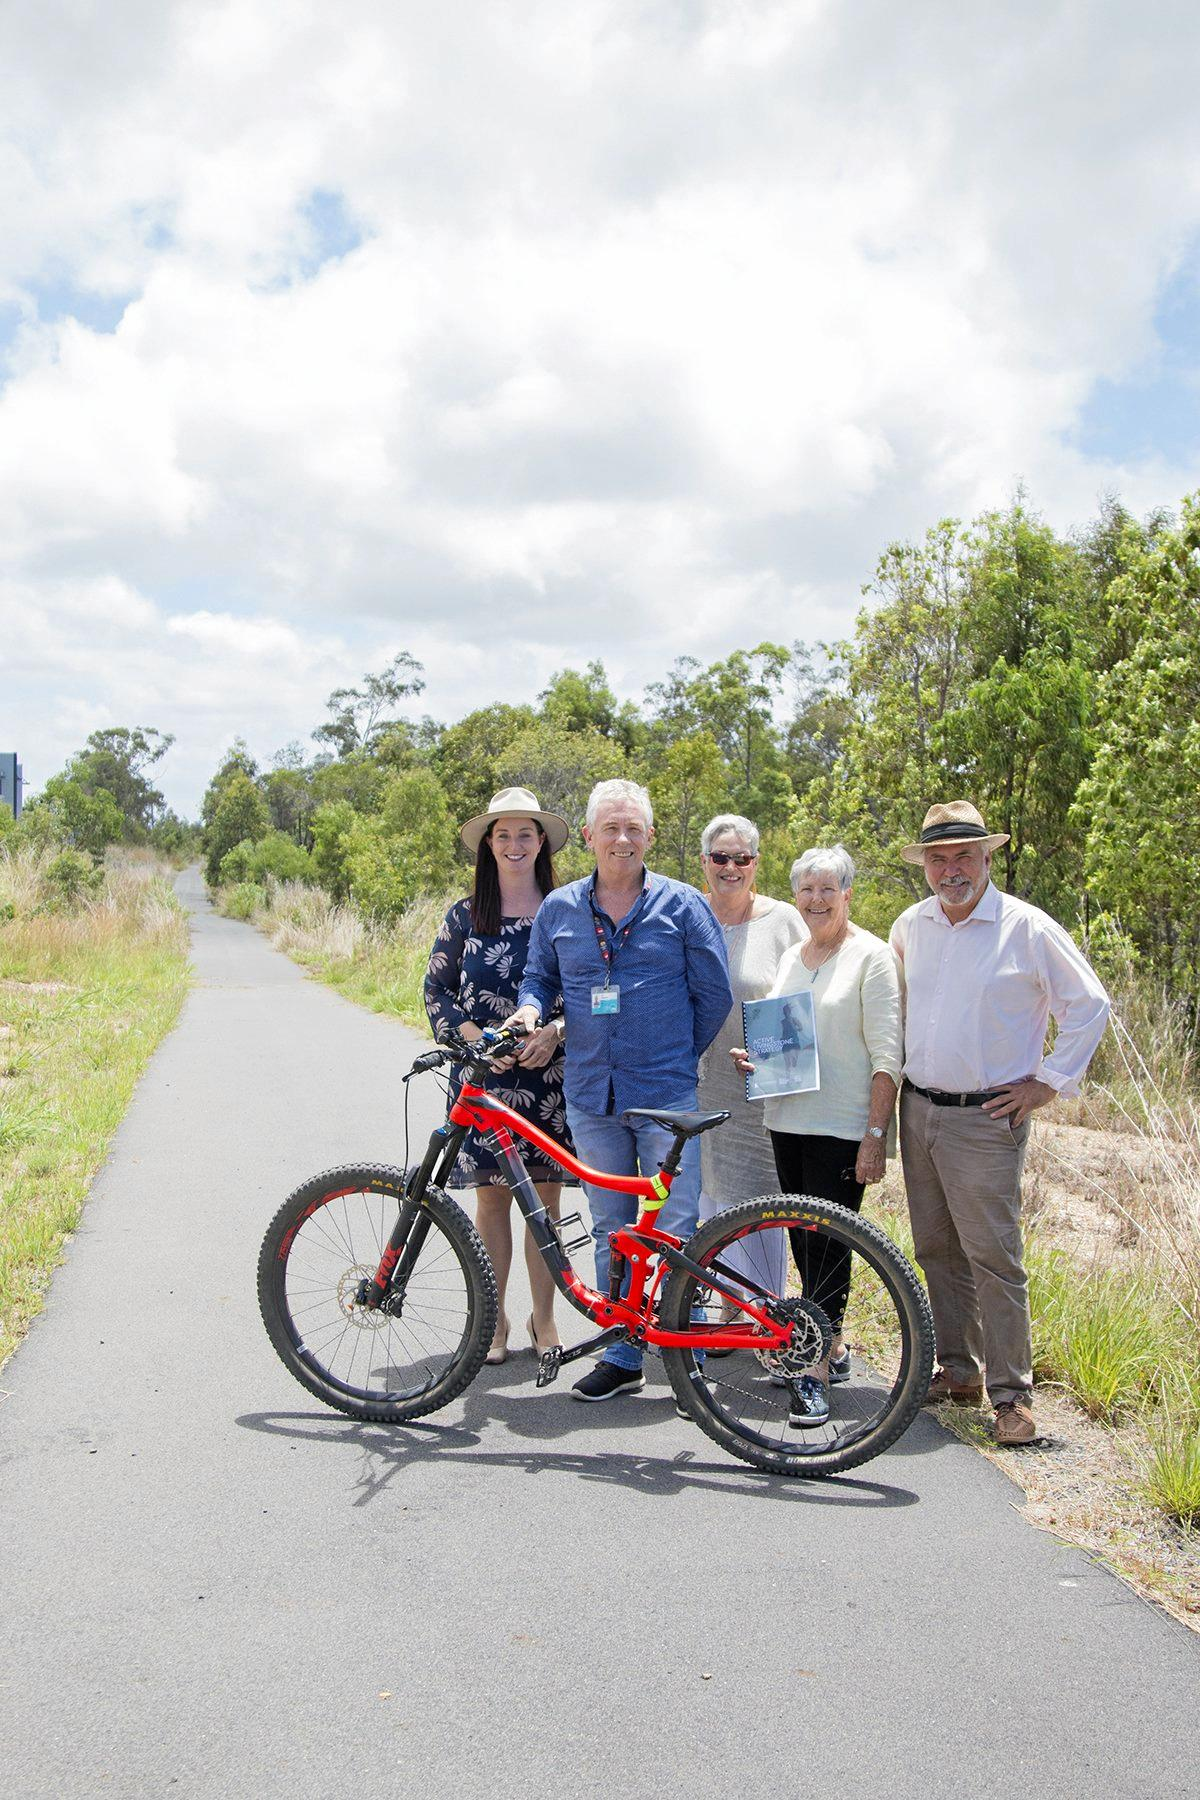 Member for Keppel Brittany Lauga and Mayor Bill Ludwig with Jan Boyd, Linda McLuskie and John Fitzgerald from the Friends of the Rail Trail/Cap Coast Bicycle User Group, excited to see the next stages of the Capricorn Coast Pineapple Rail Trail take shape.